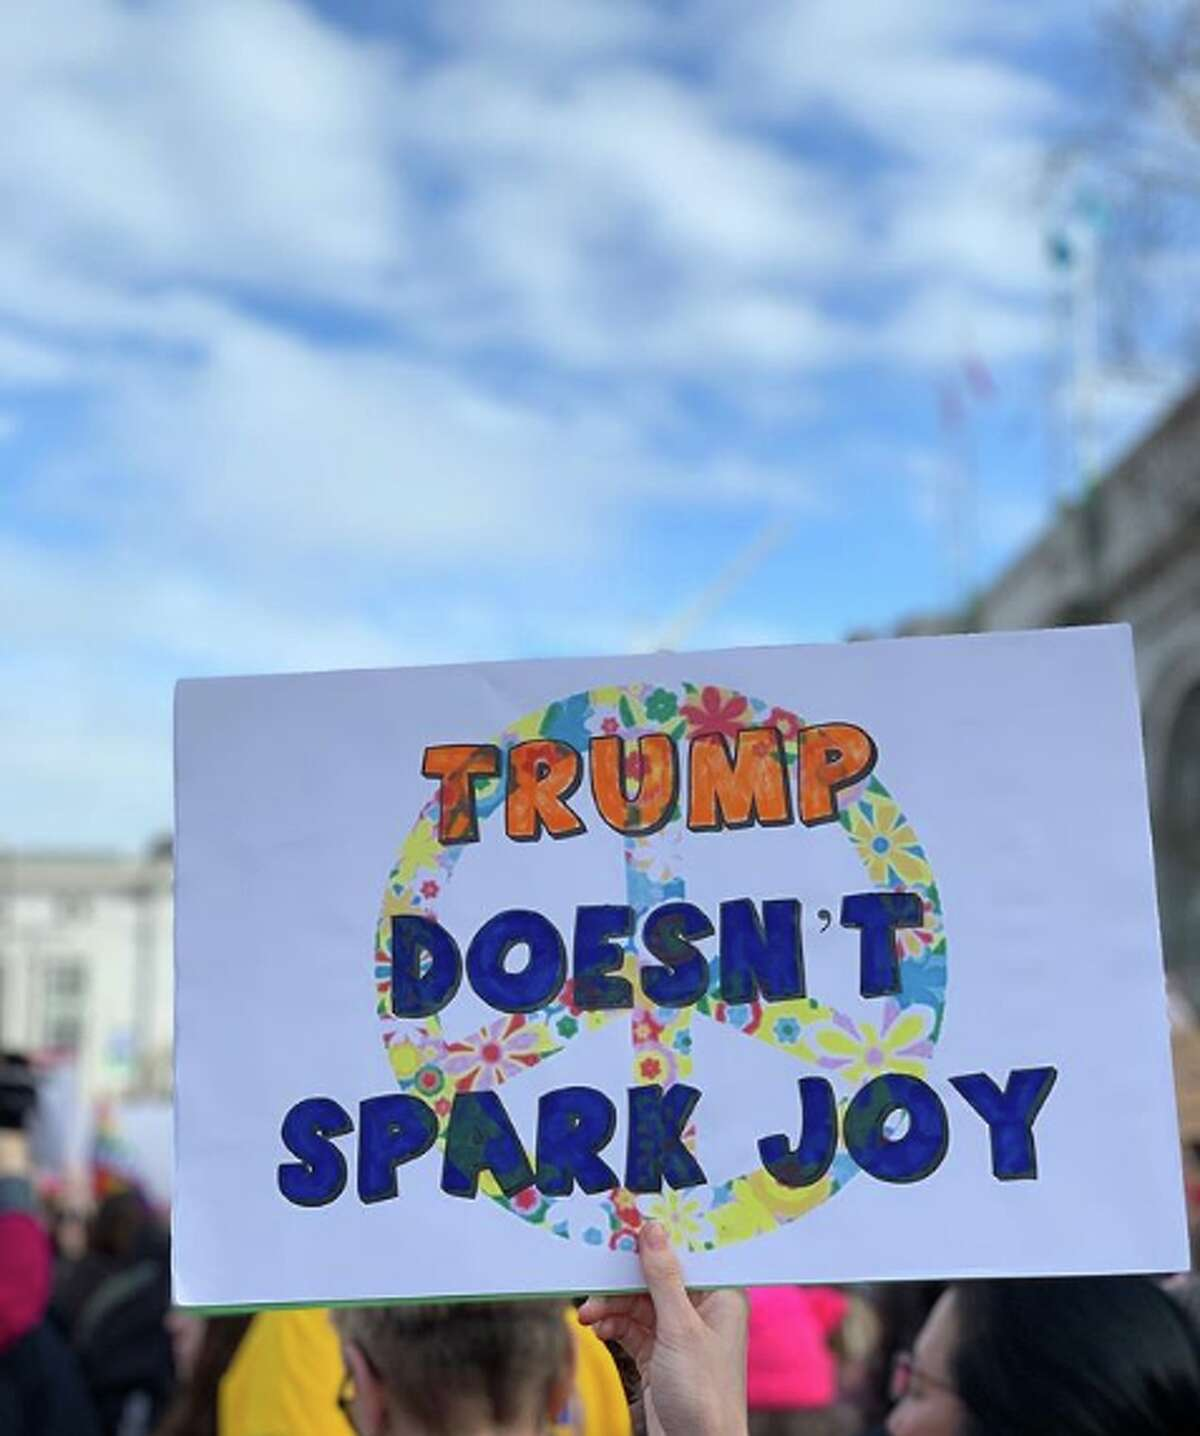 Participants in the Women's March in San Francisco came up with creative signs and art for Saturday.